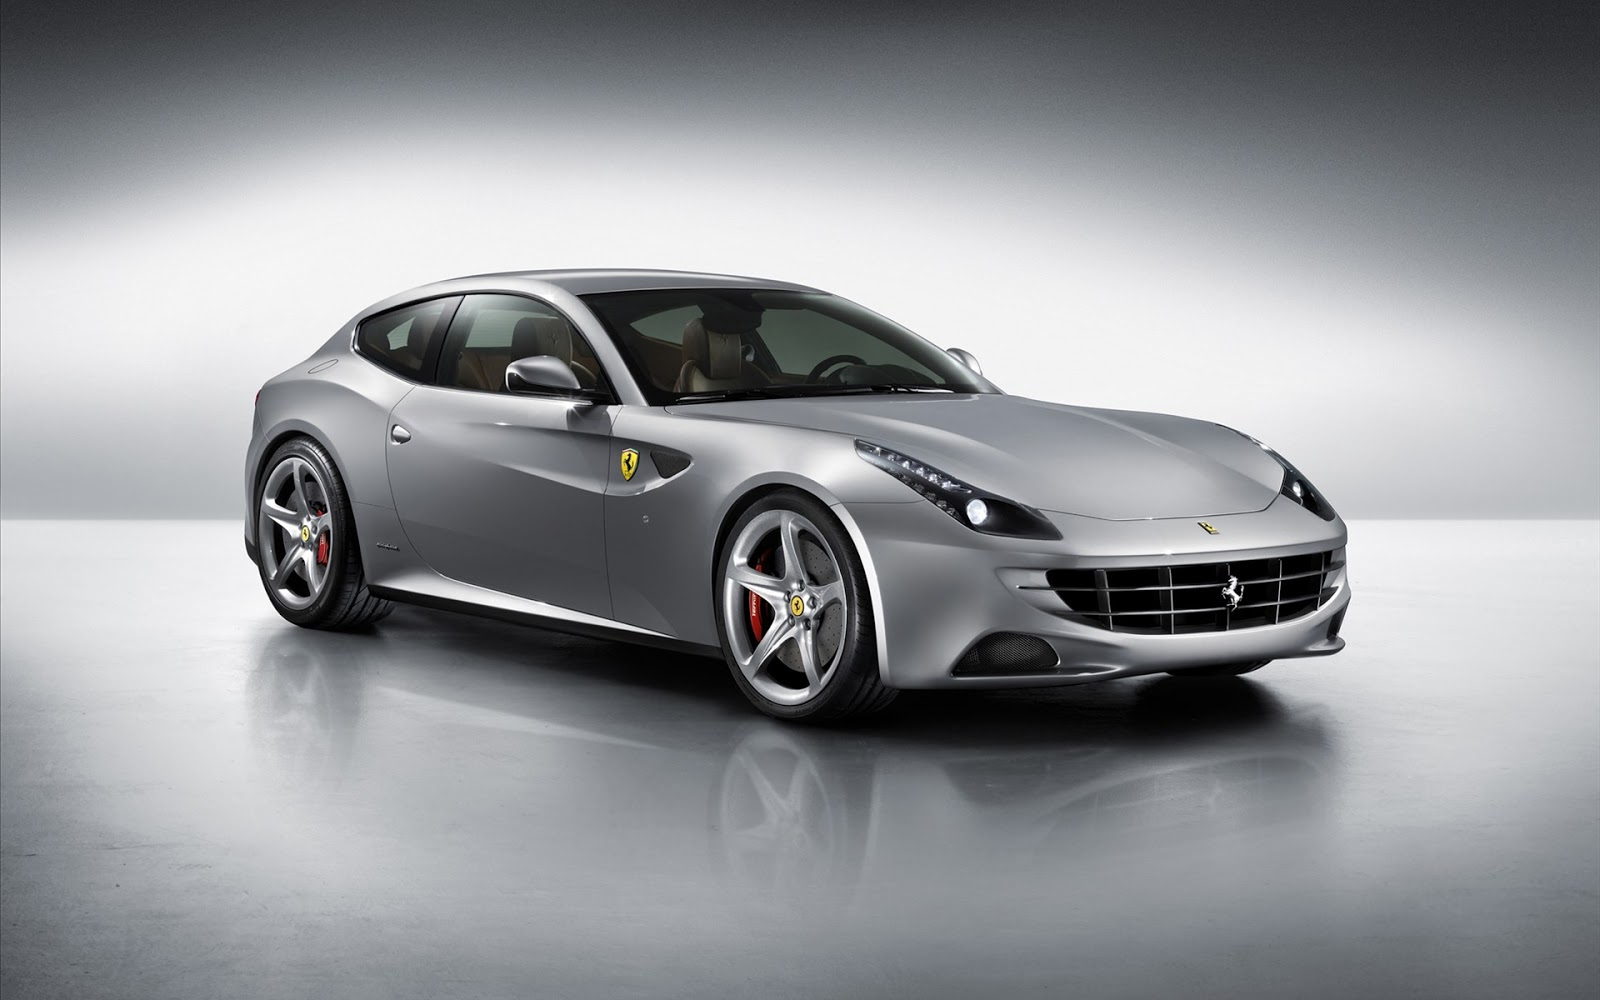 ... Ferrari Car Models Hd Photo Gallery, New Ferrari Car Hd Wallpapers,ferrari  Car,latest Ferrari Car Hd Images, Ferrari Interiors Hd Wallpapers, ...